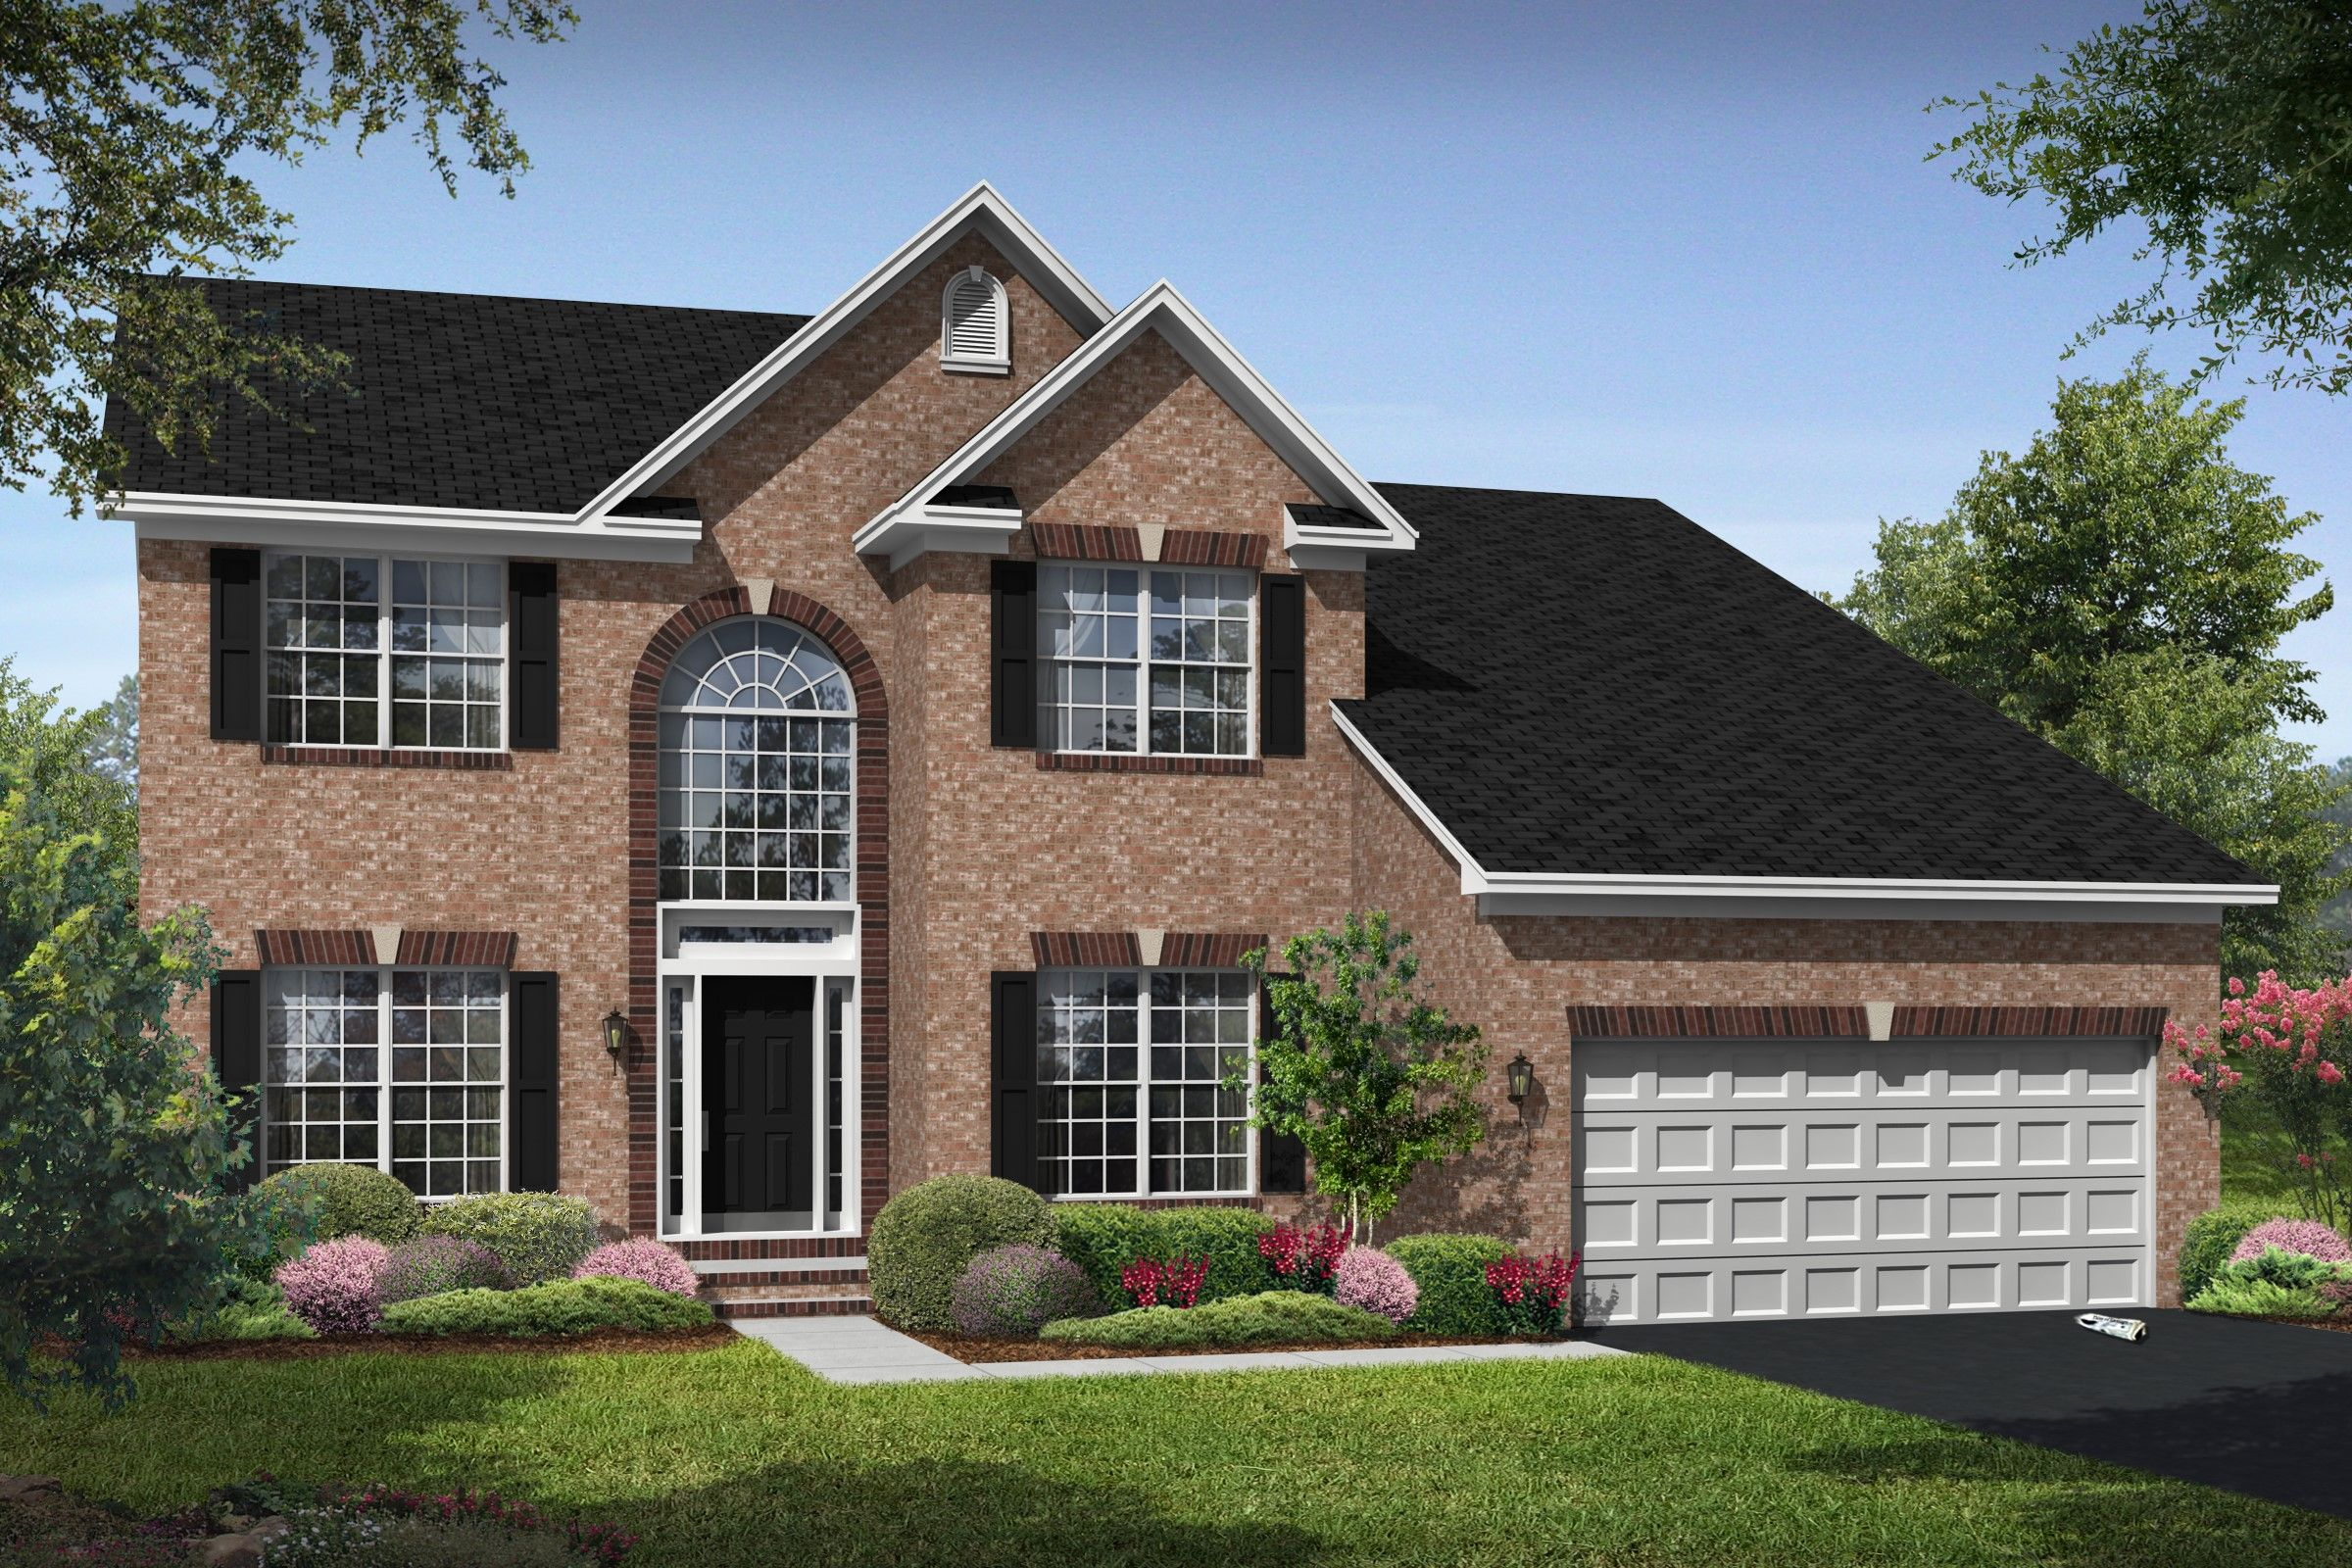 Single Family for Active at Cardinal View At Eagles Pointe - Alaska 16378 Kramer Estate Drive Woodbridge, Virginia 22191 United States